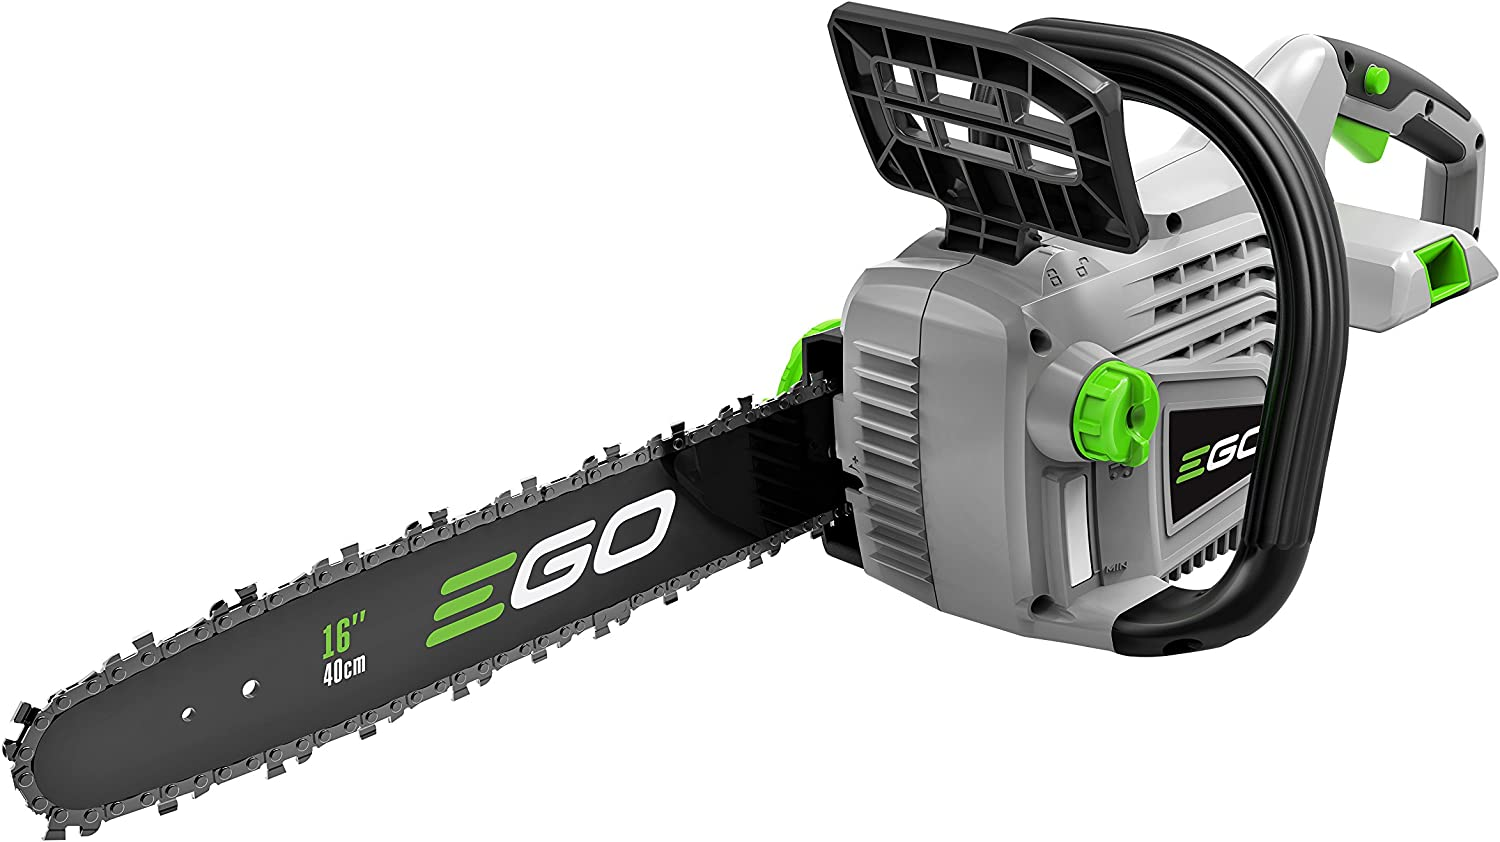 EGO Power CS1600 16-Inch 56V Lithium-ion Cordless Chainsaw – Battery and Charger Not Included